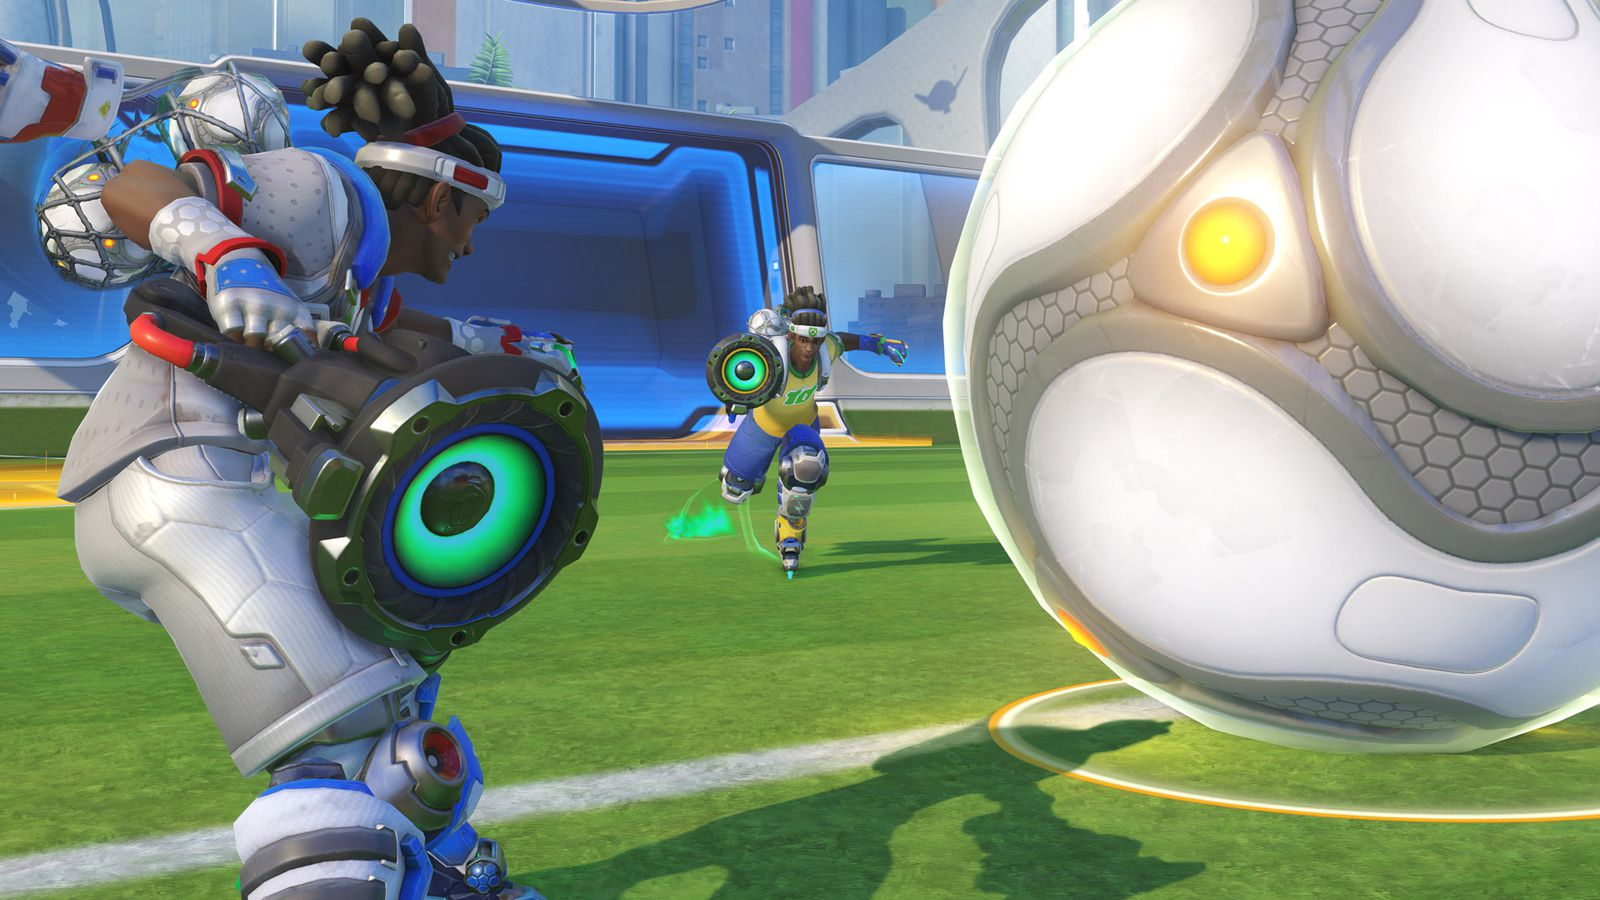 Overwatch players exploiting a bug in Lúcioball may face ...